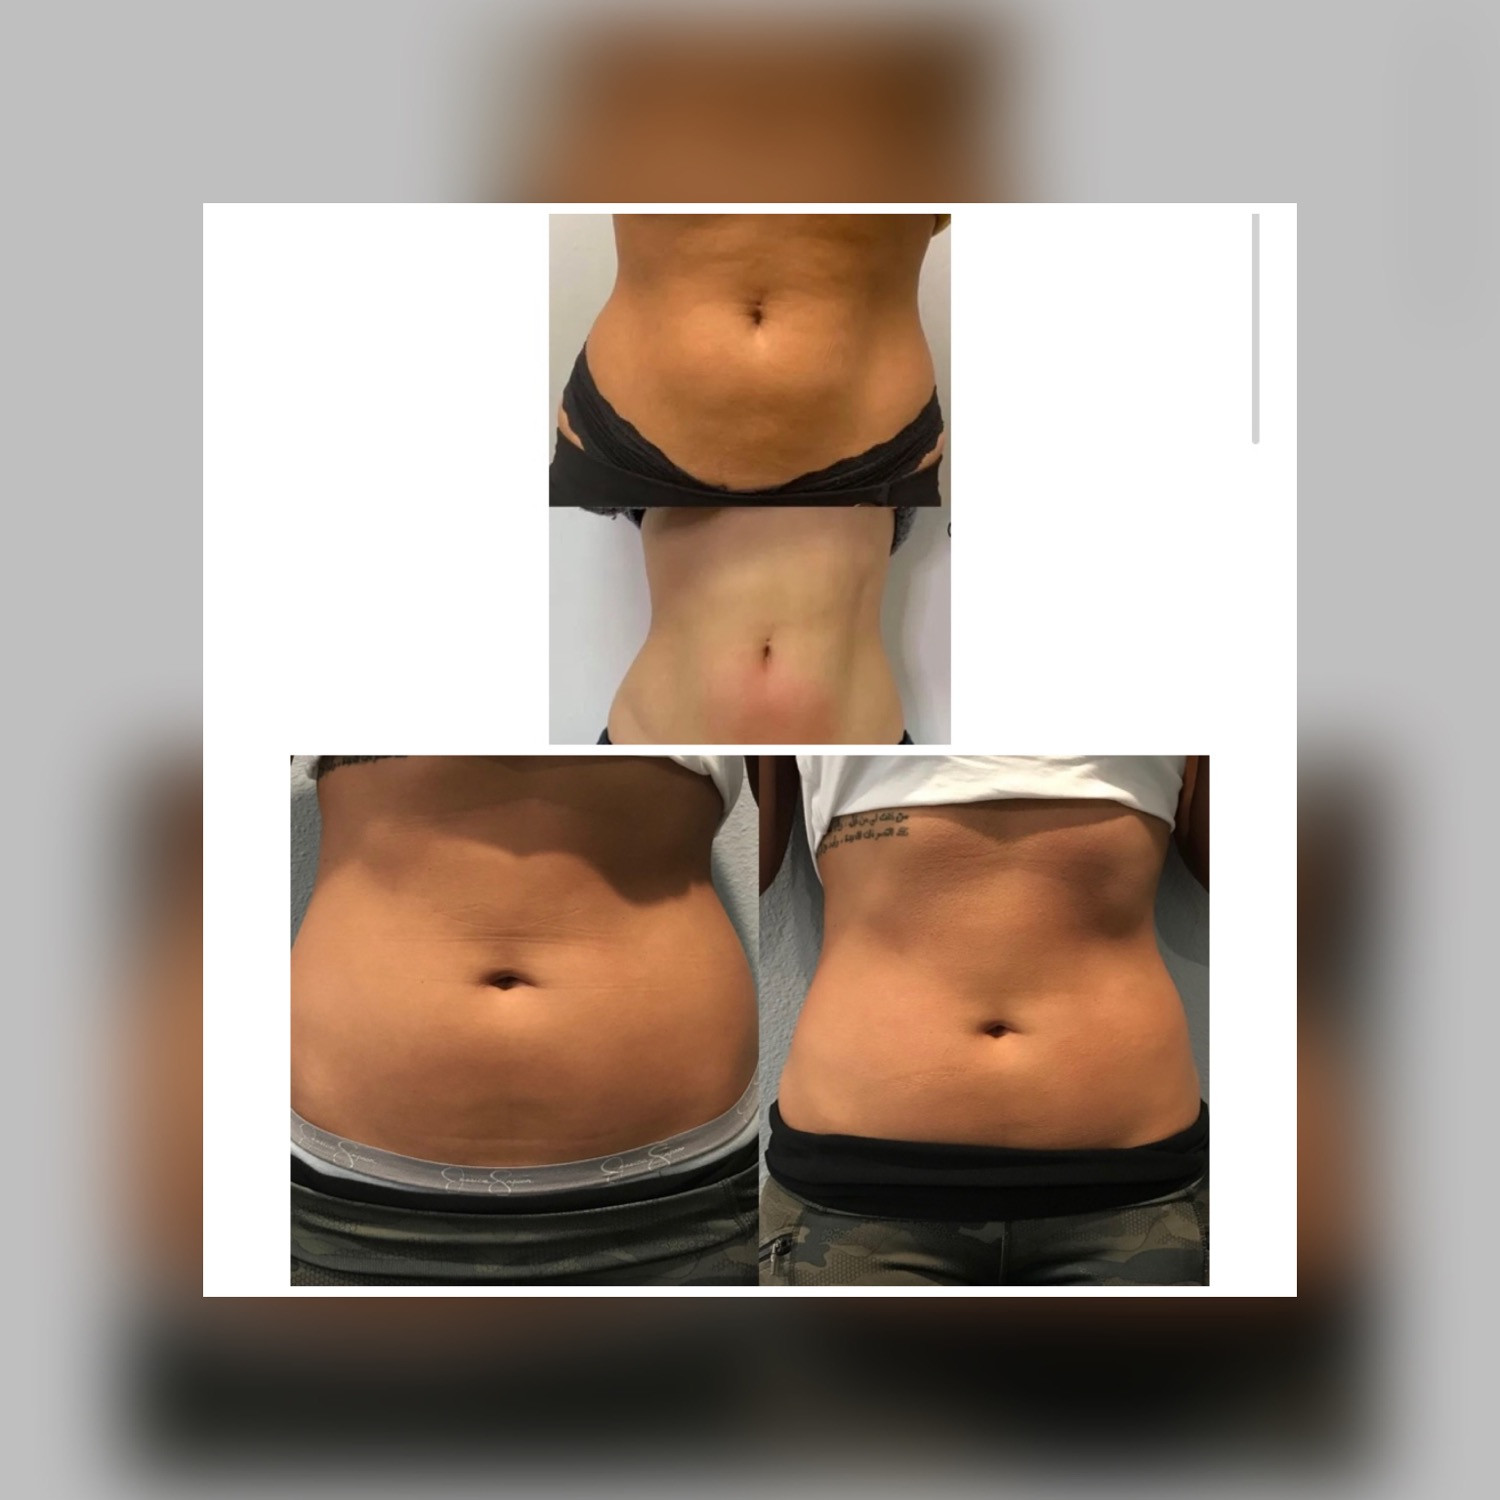 10 Sessions of CryoSlimming